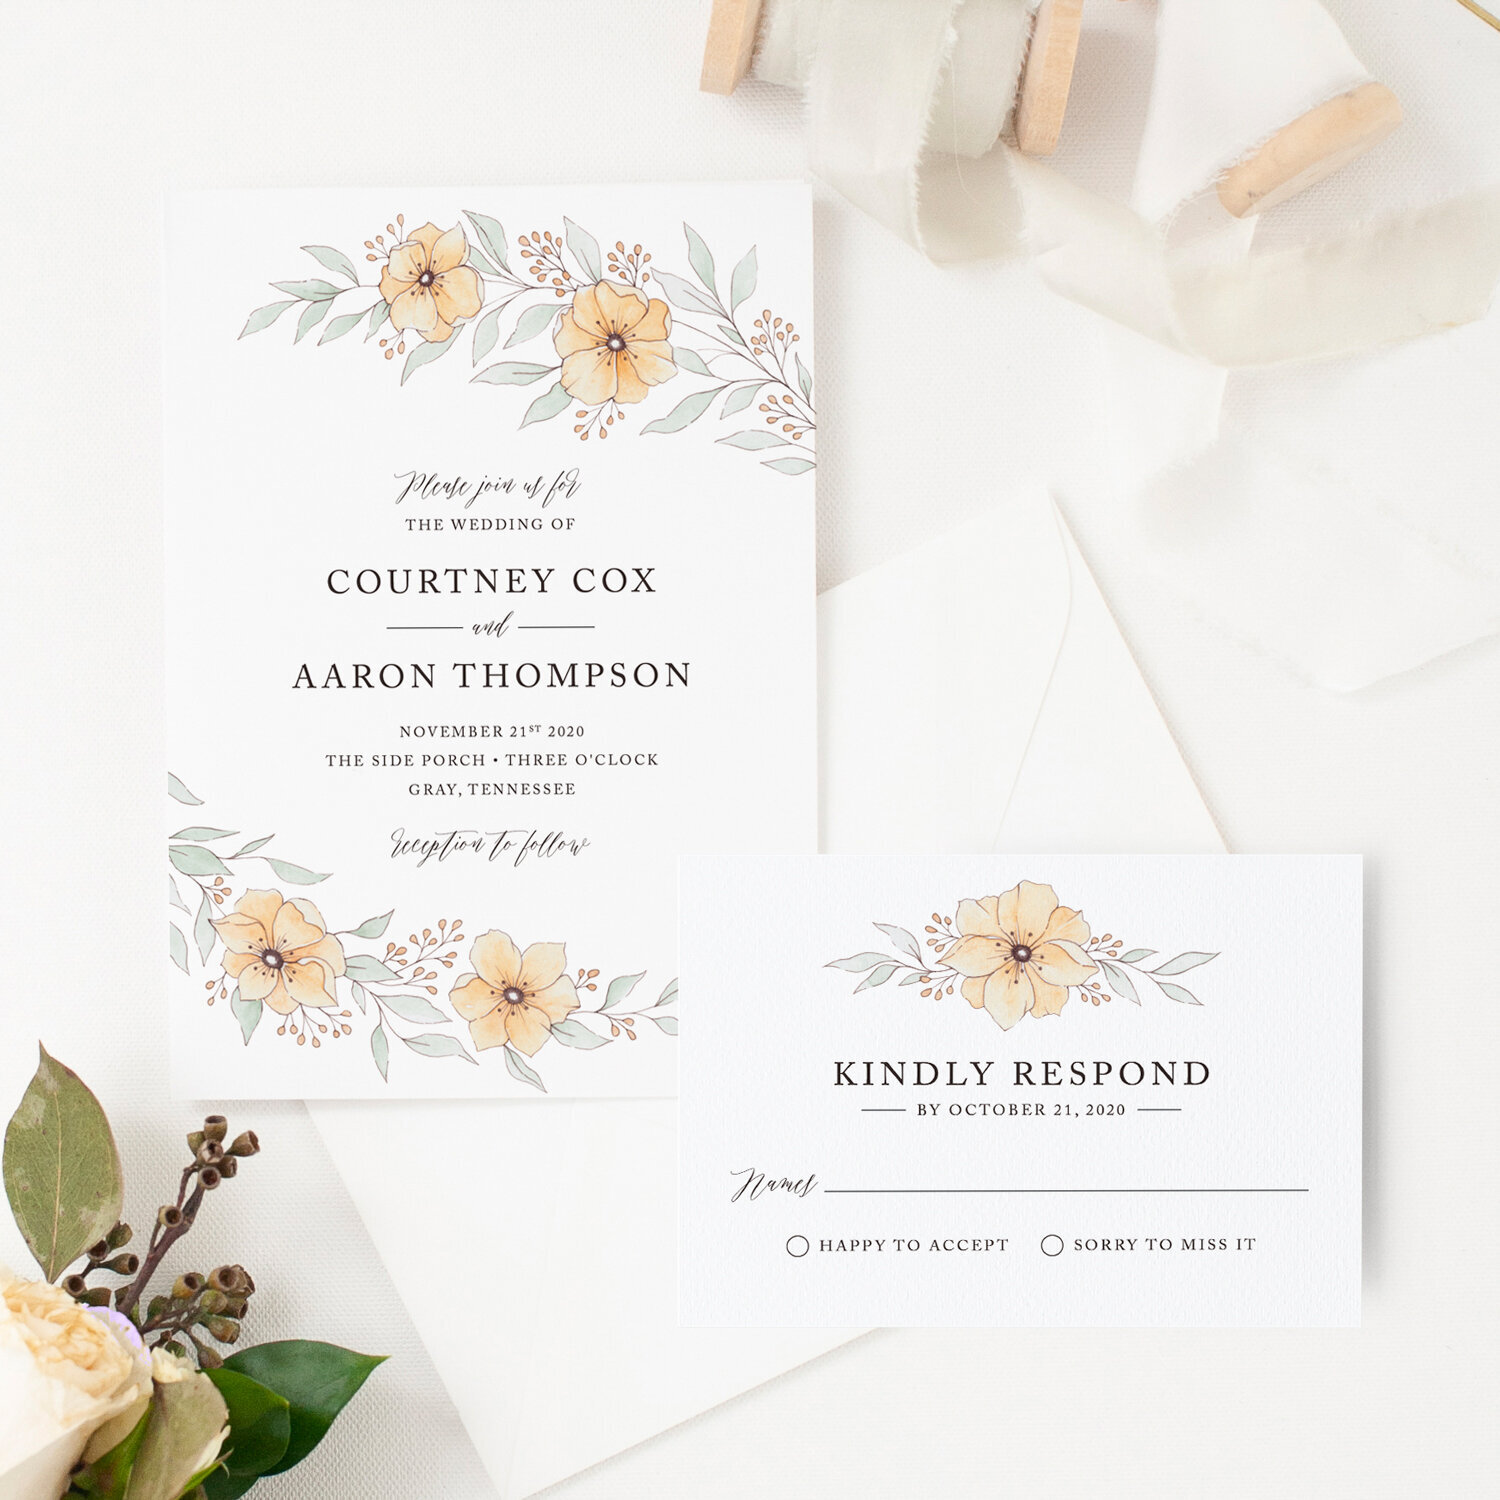 custom wedding invitation with watercolor florals